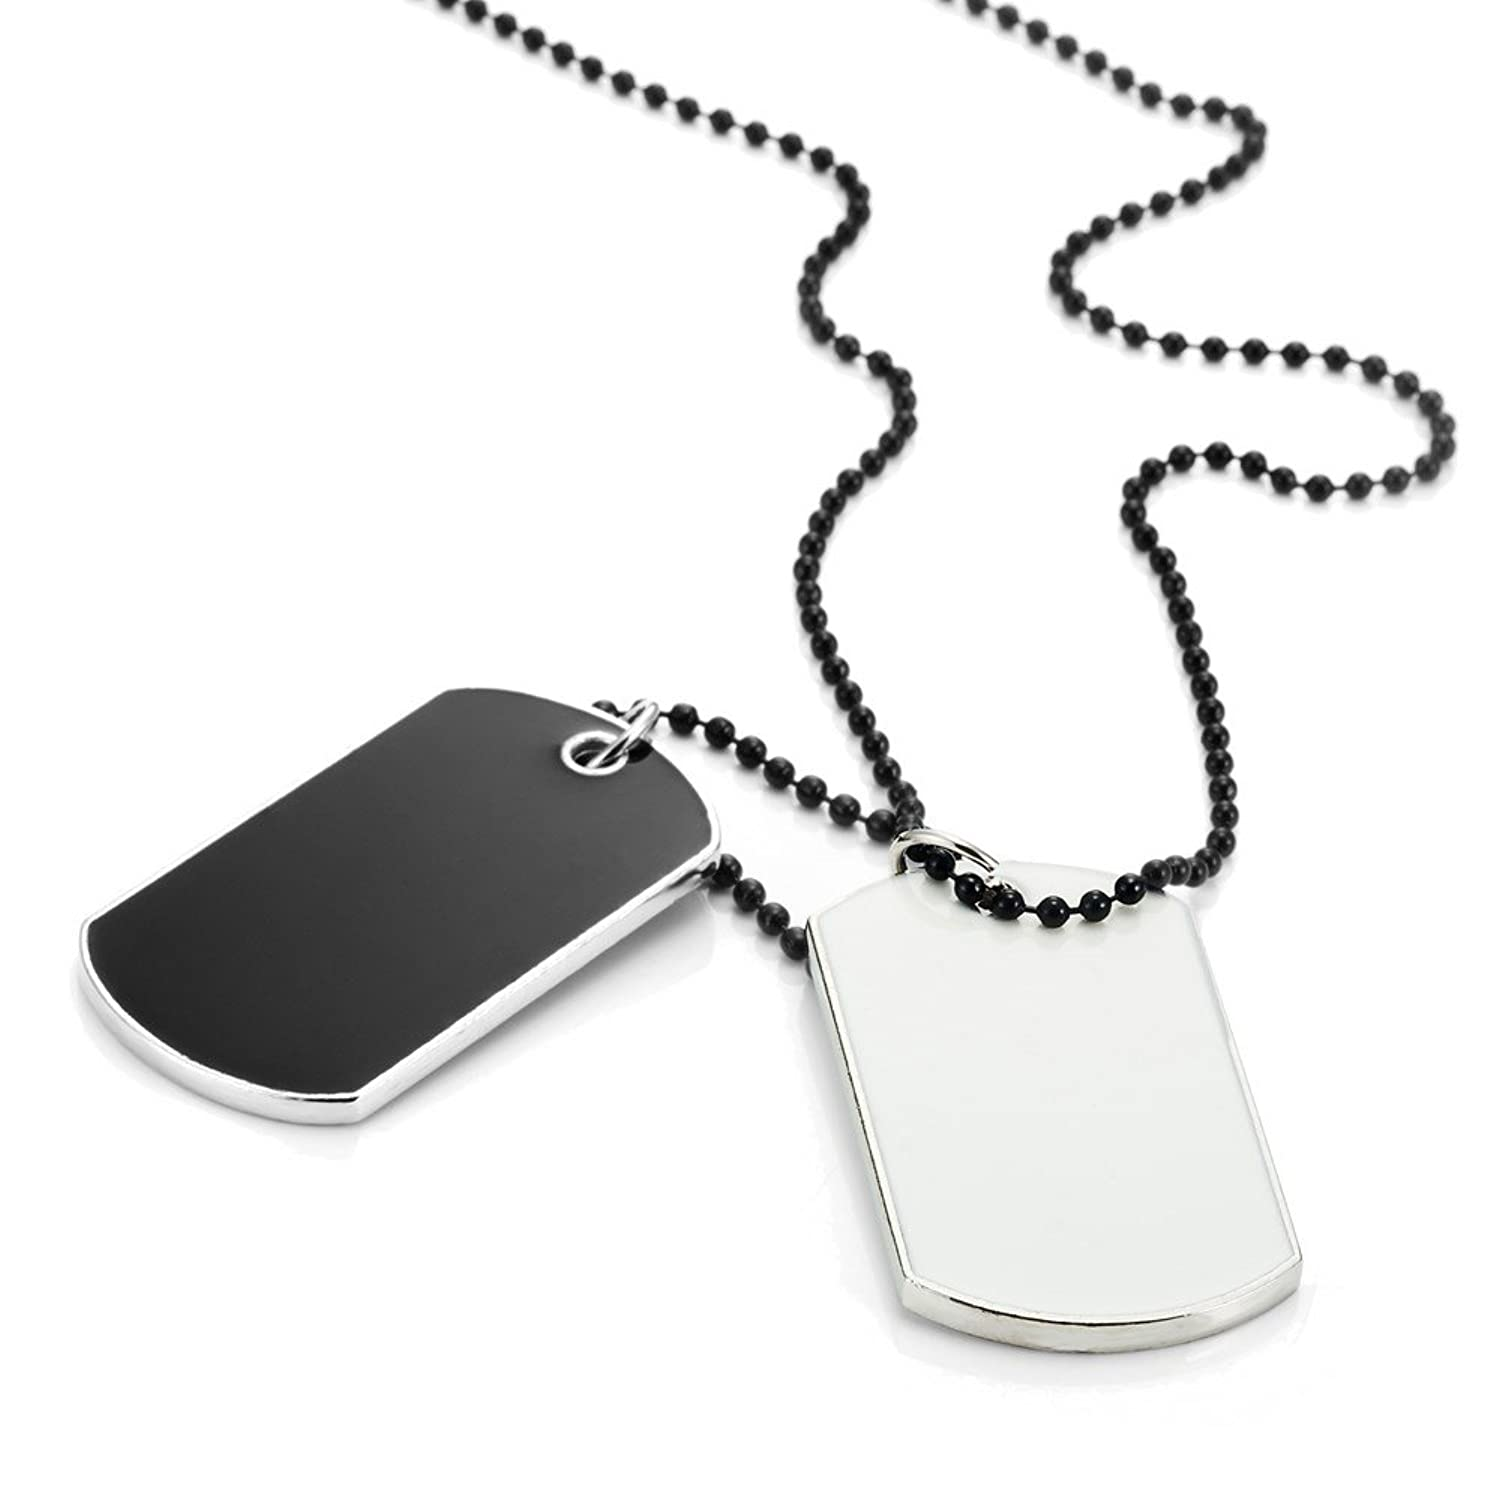 Army style 2pcs dog tag pendant mens necklace chain with branded army style 2pcs dog tag pendant mens necklace chain with branded gift box amazon mozeypictures